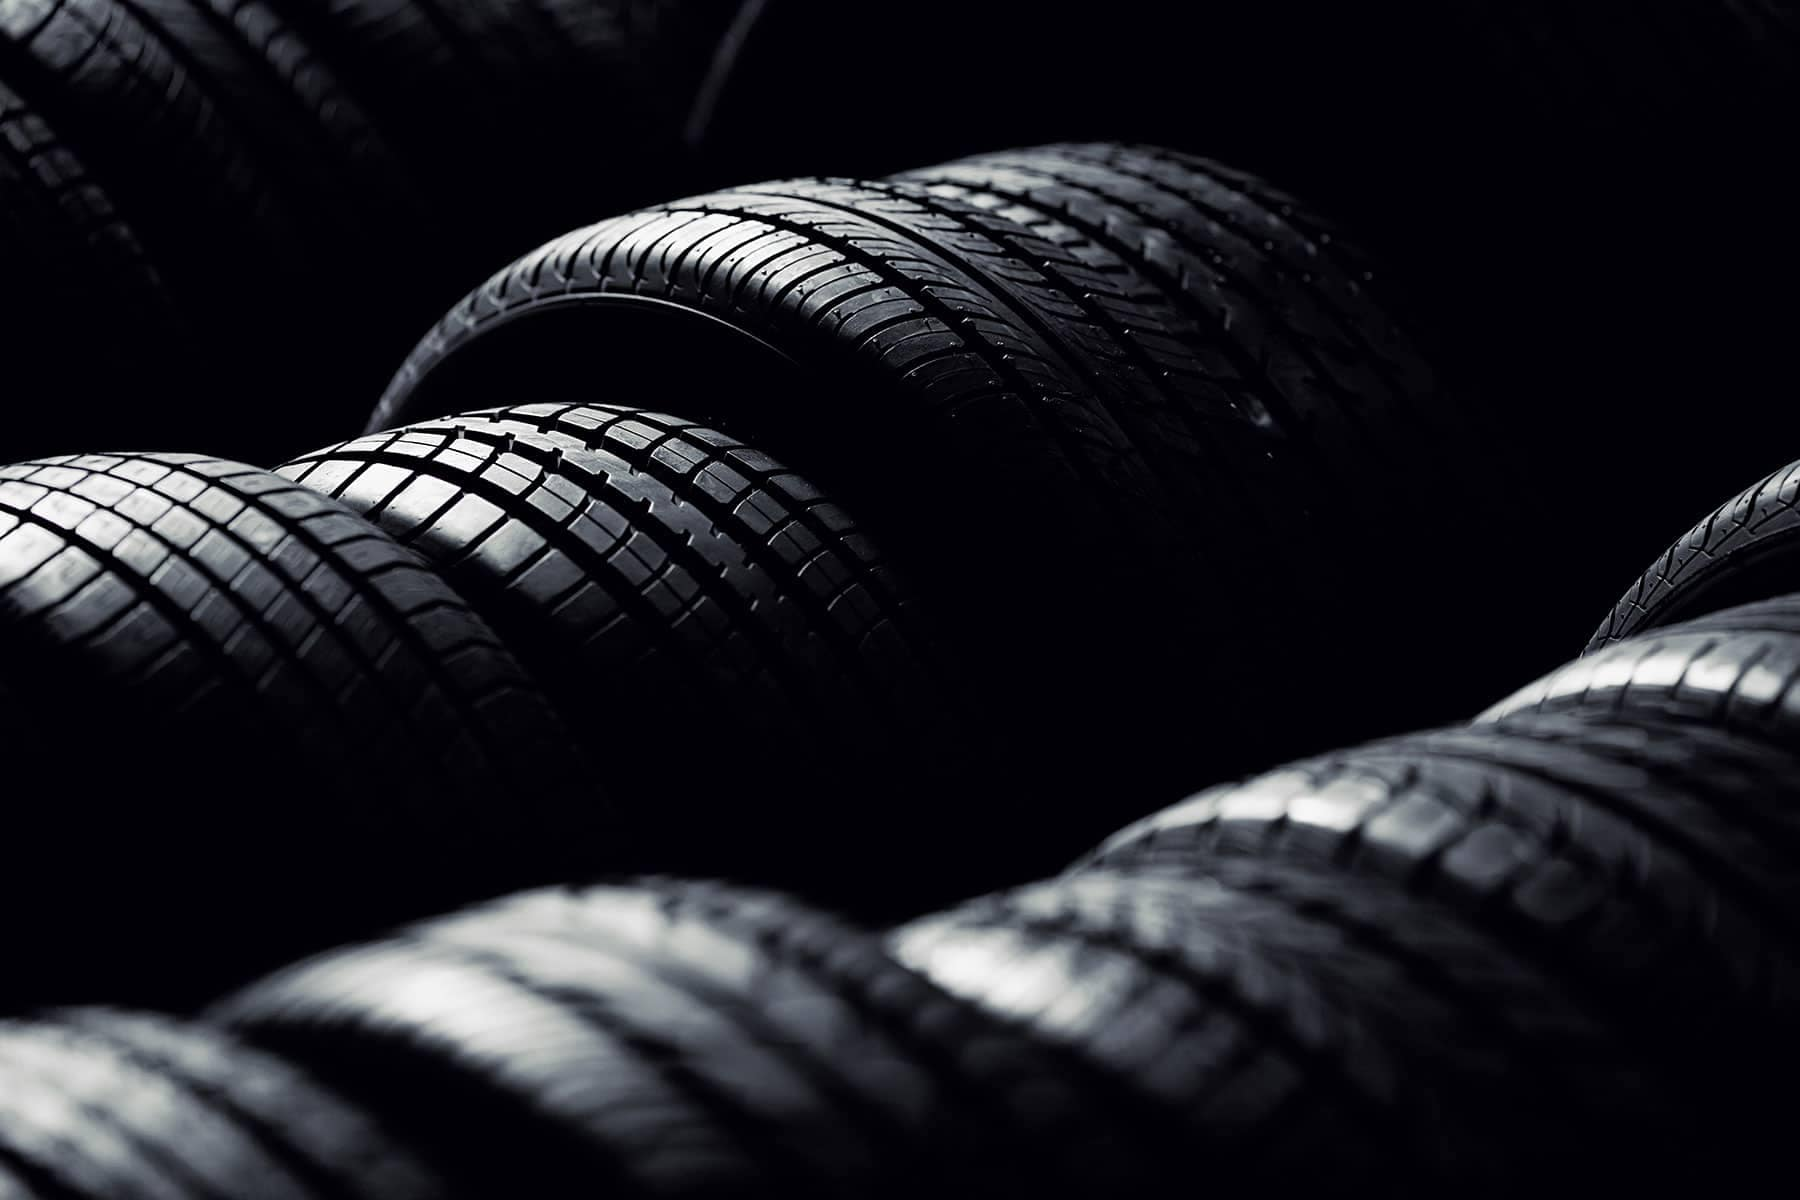 Row-of-tires